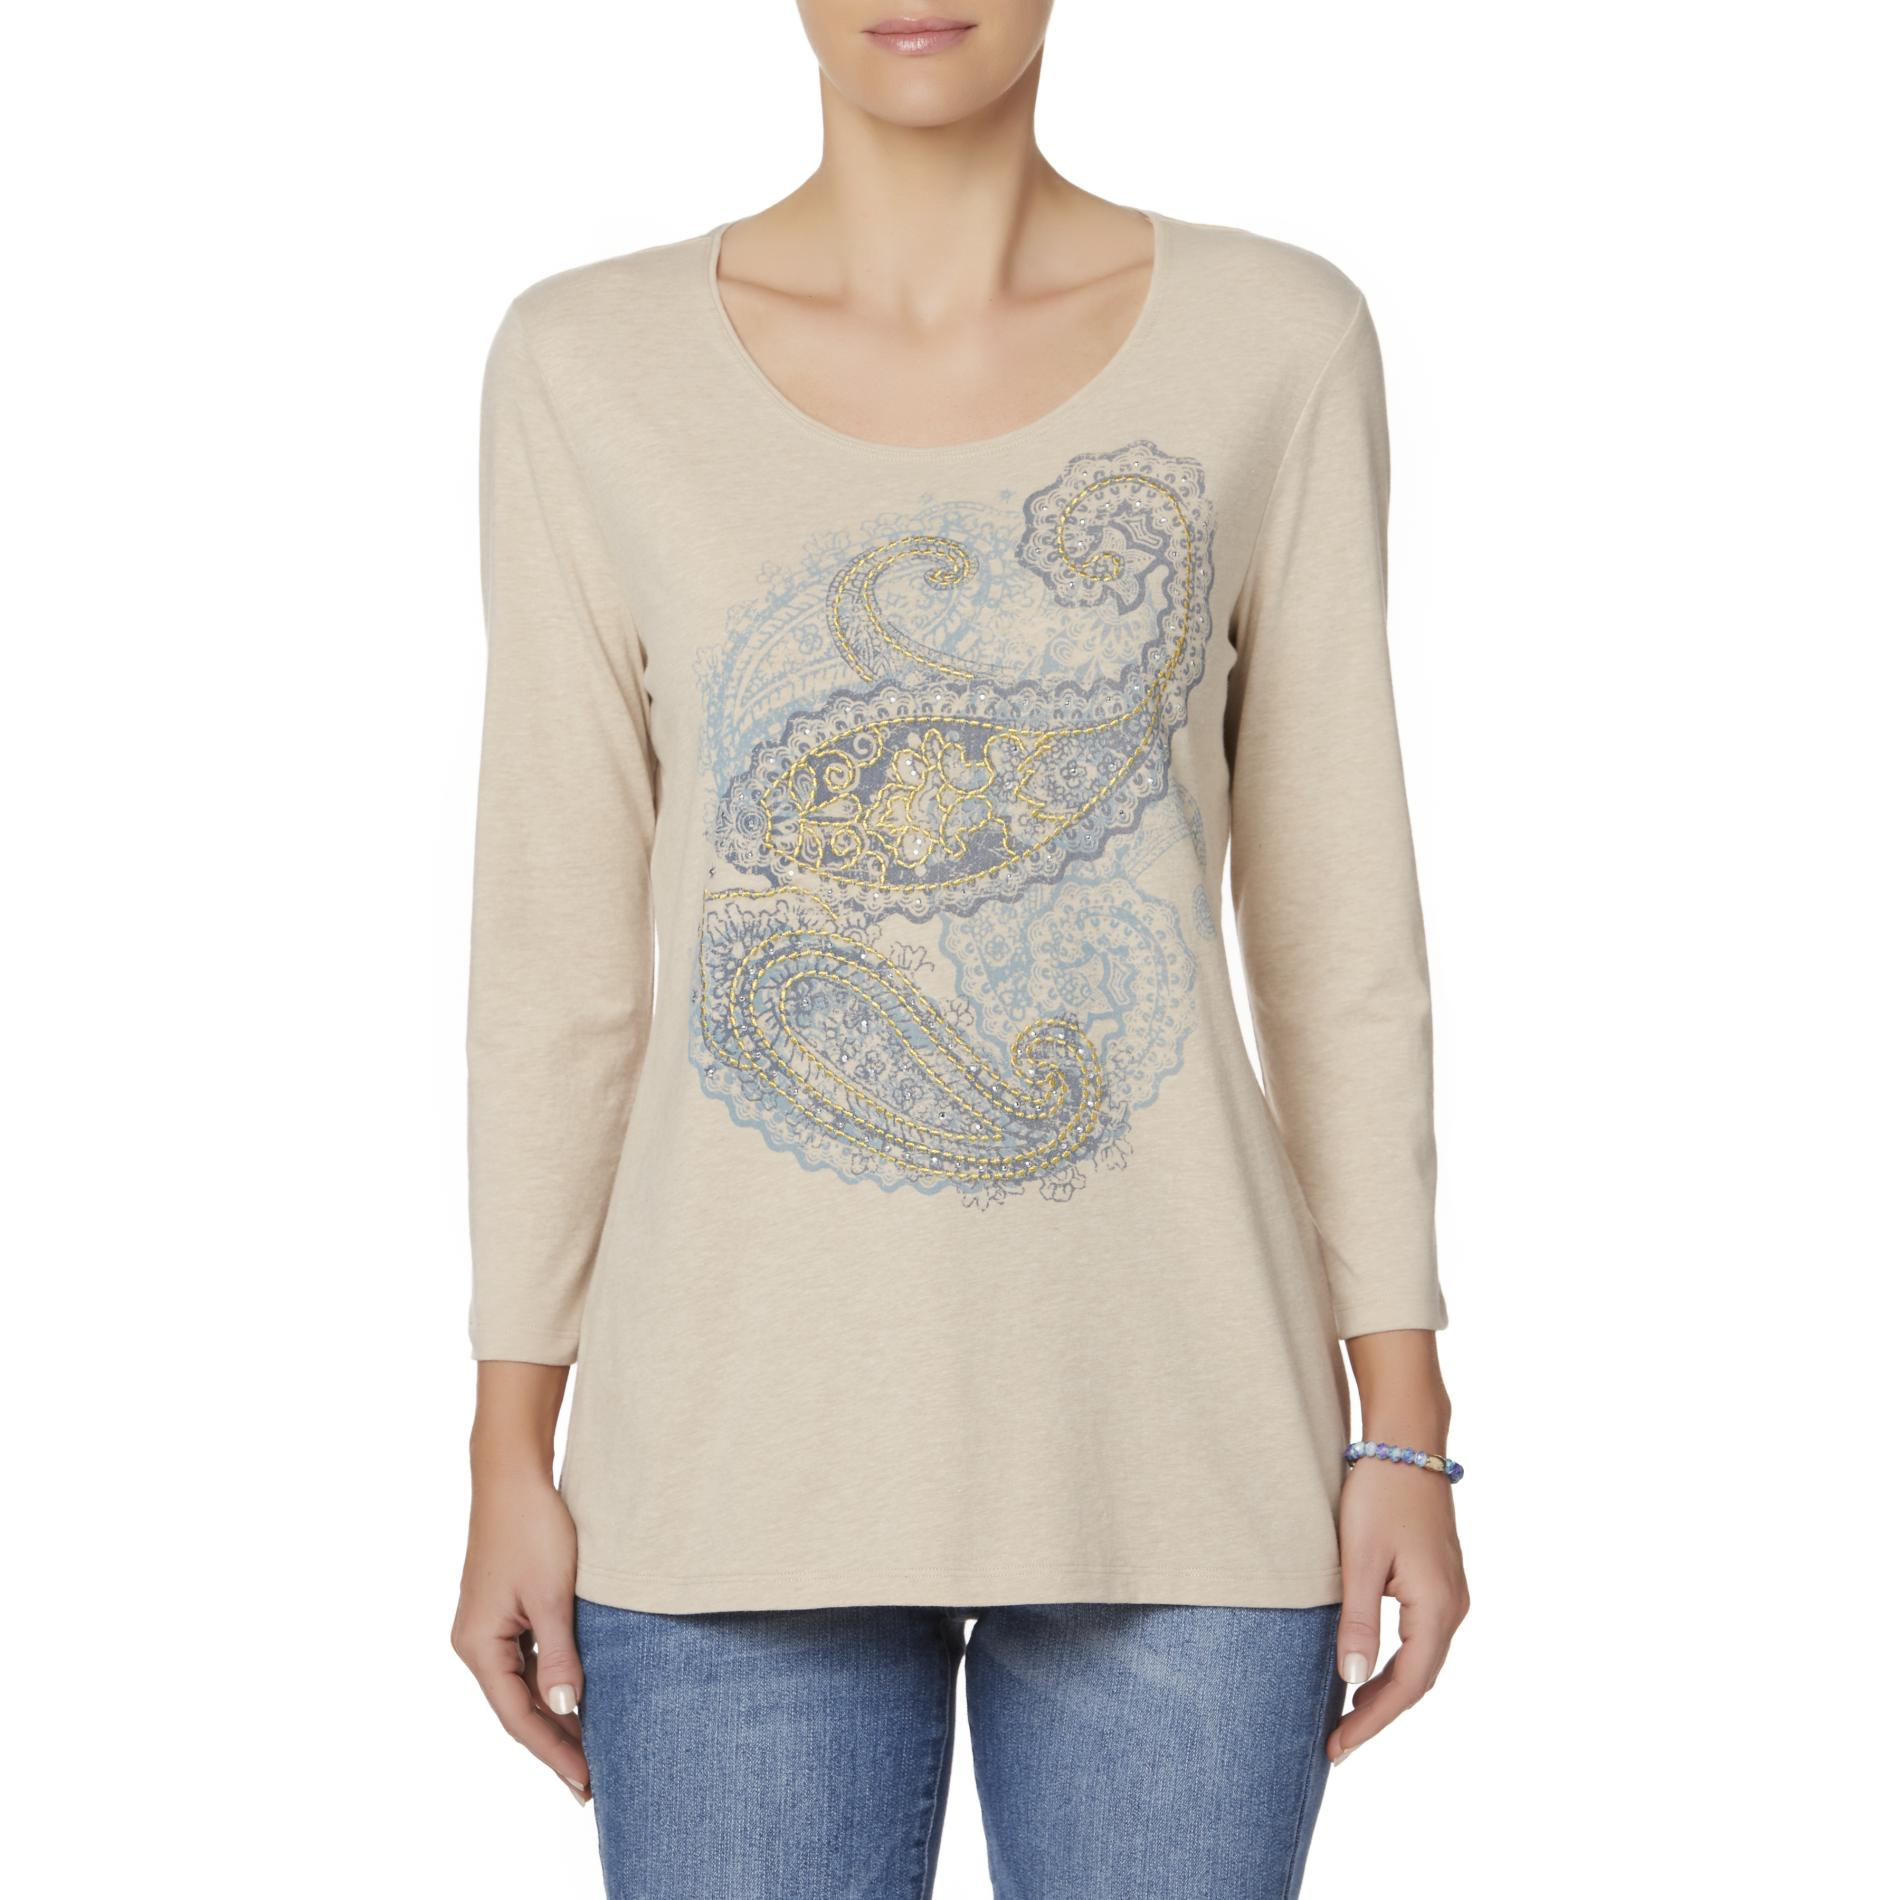 Laura Scott Women's Embellished Scoop Neck Top - Paisley, Size: Medium, Wine Tasting thumbnail 1